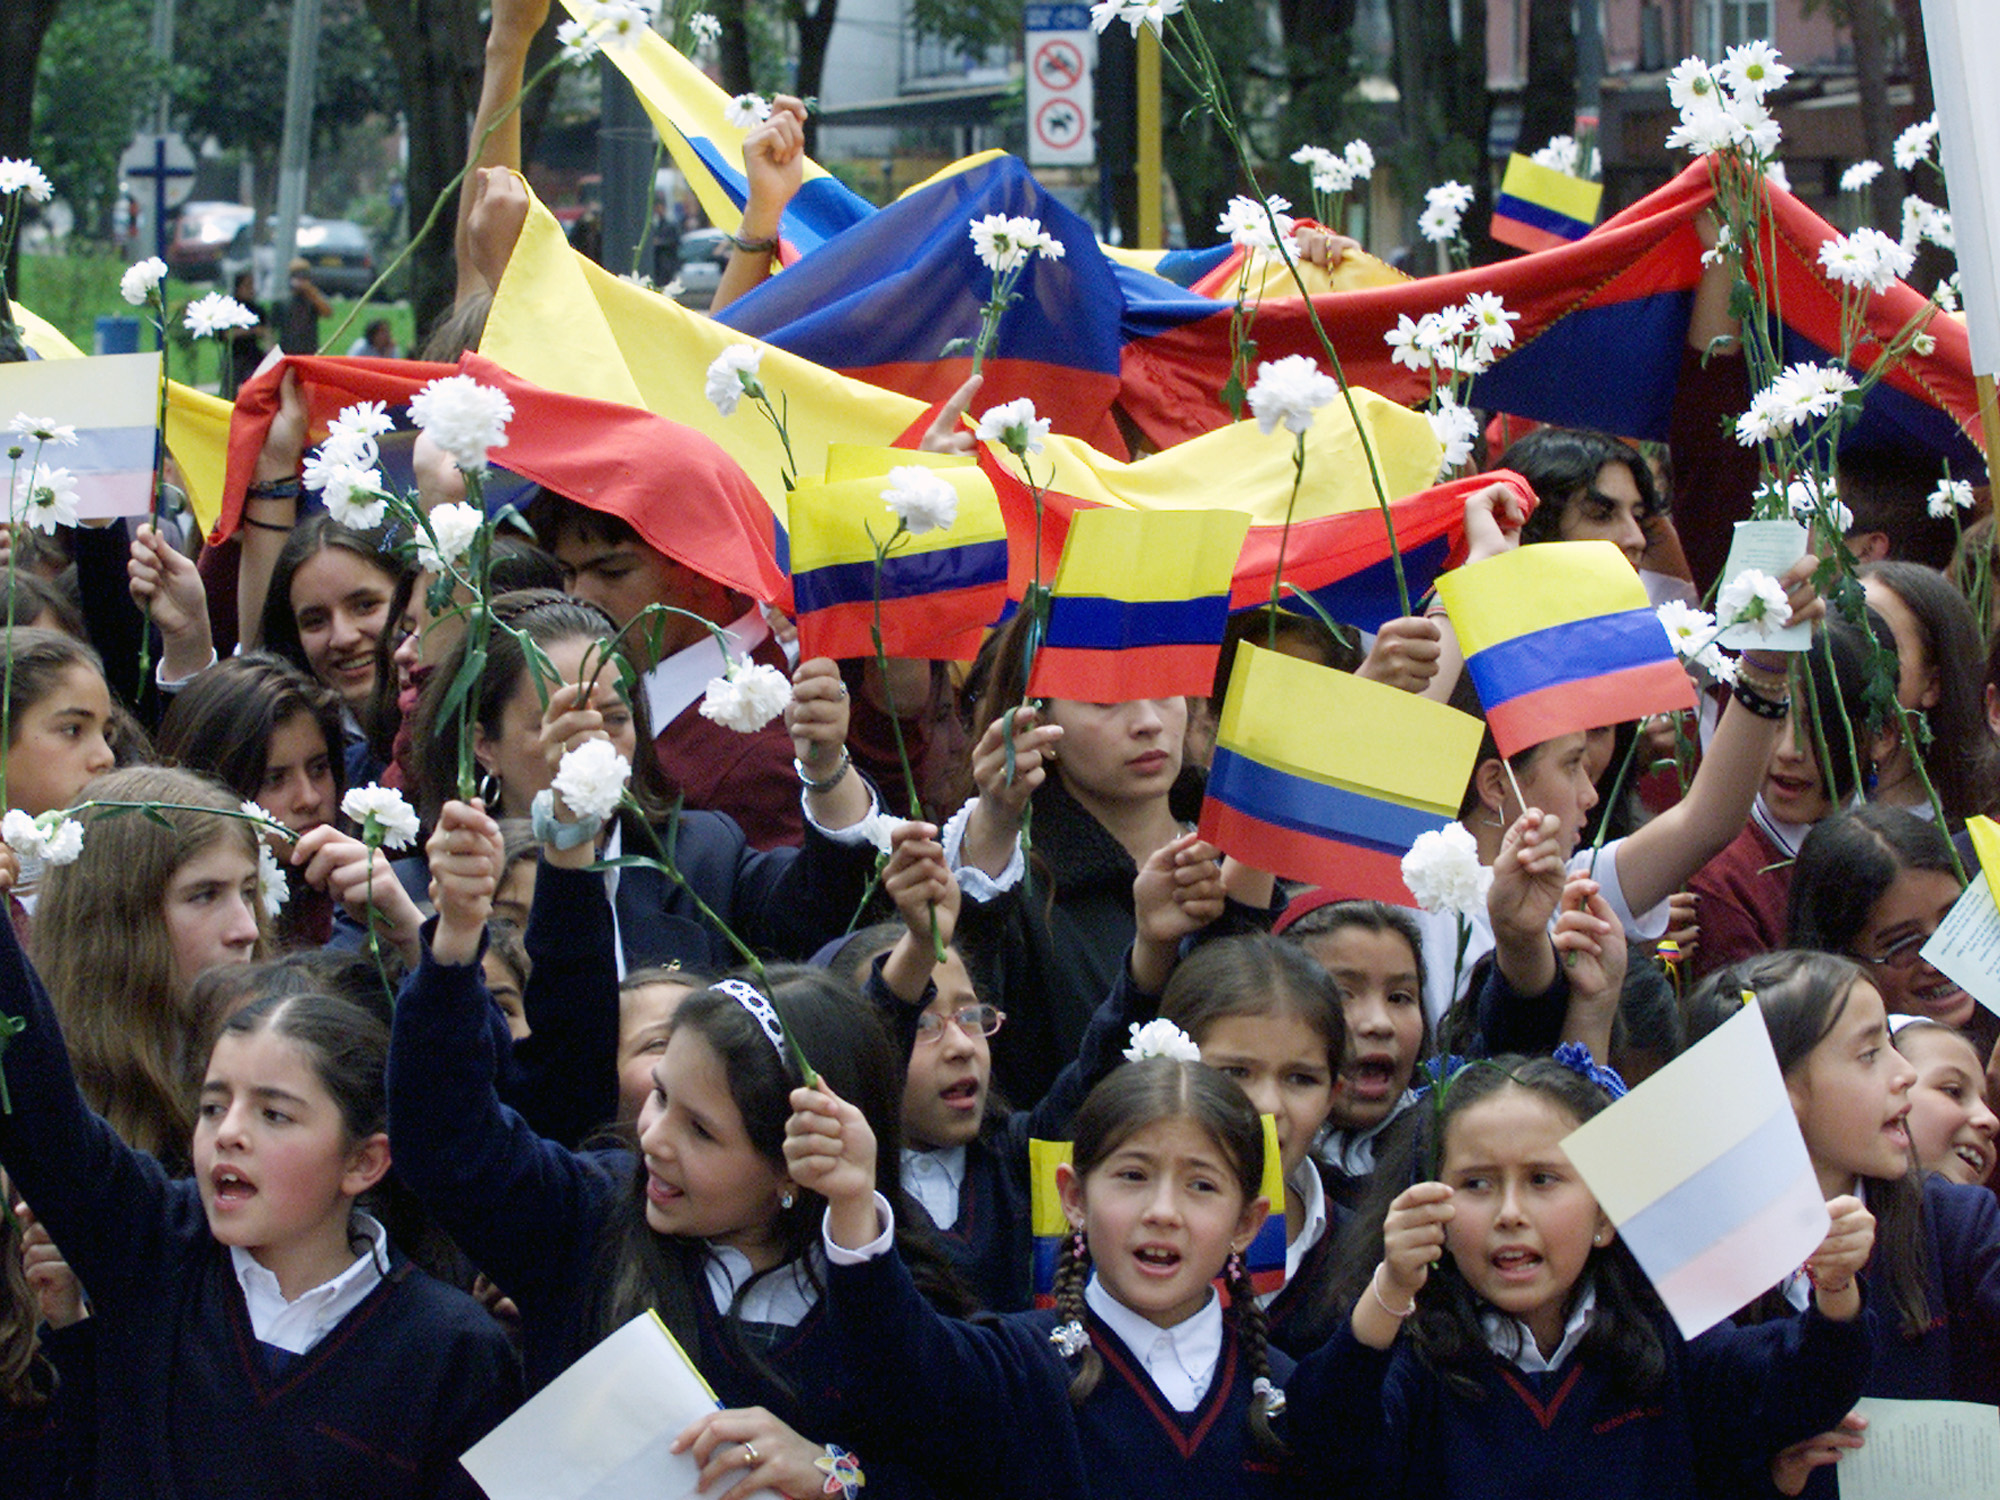 Students celebrating International Women's Day hold Colombian flags and flowers during march to demand the release of dozens of kidnapped children, Bogota.